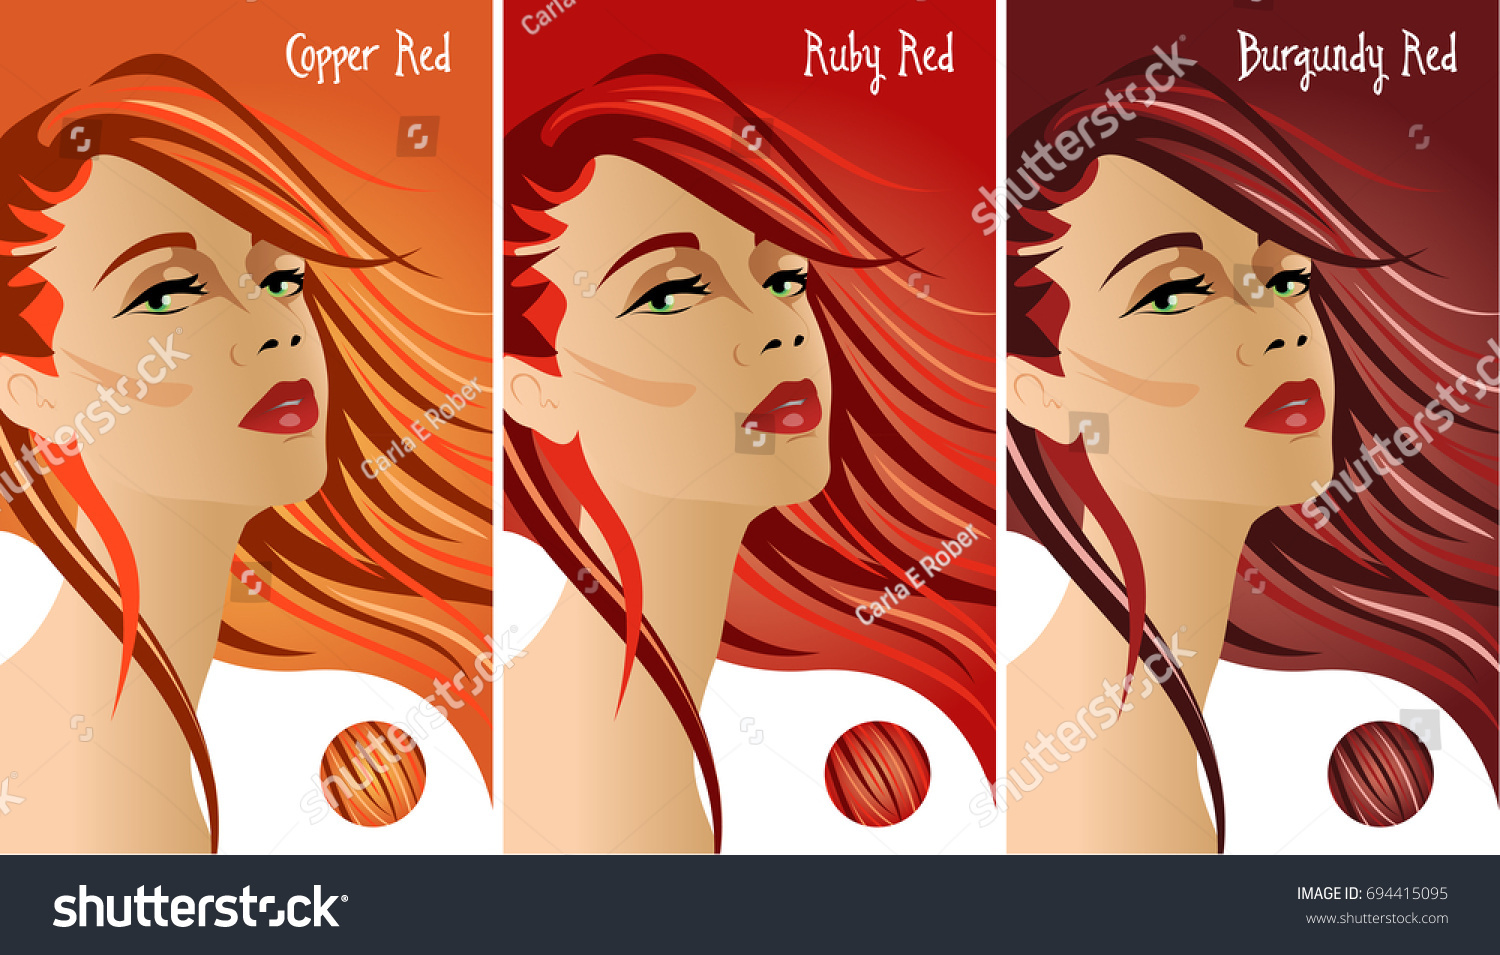 Red Hair Colors Chart Stock Vector Royalty Free 694415095